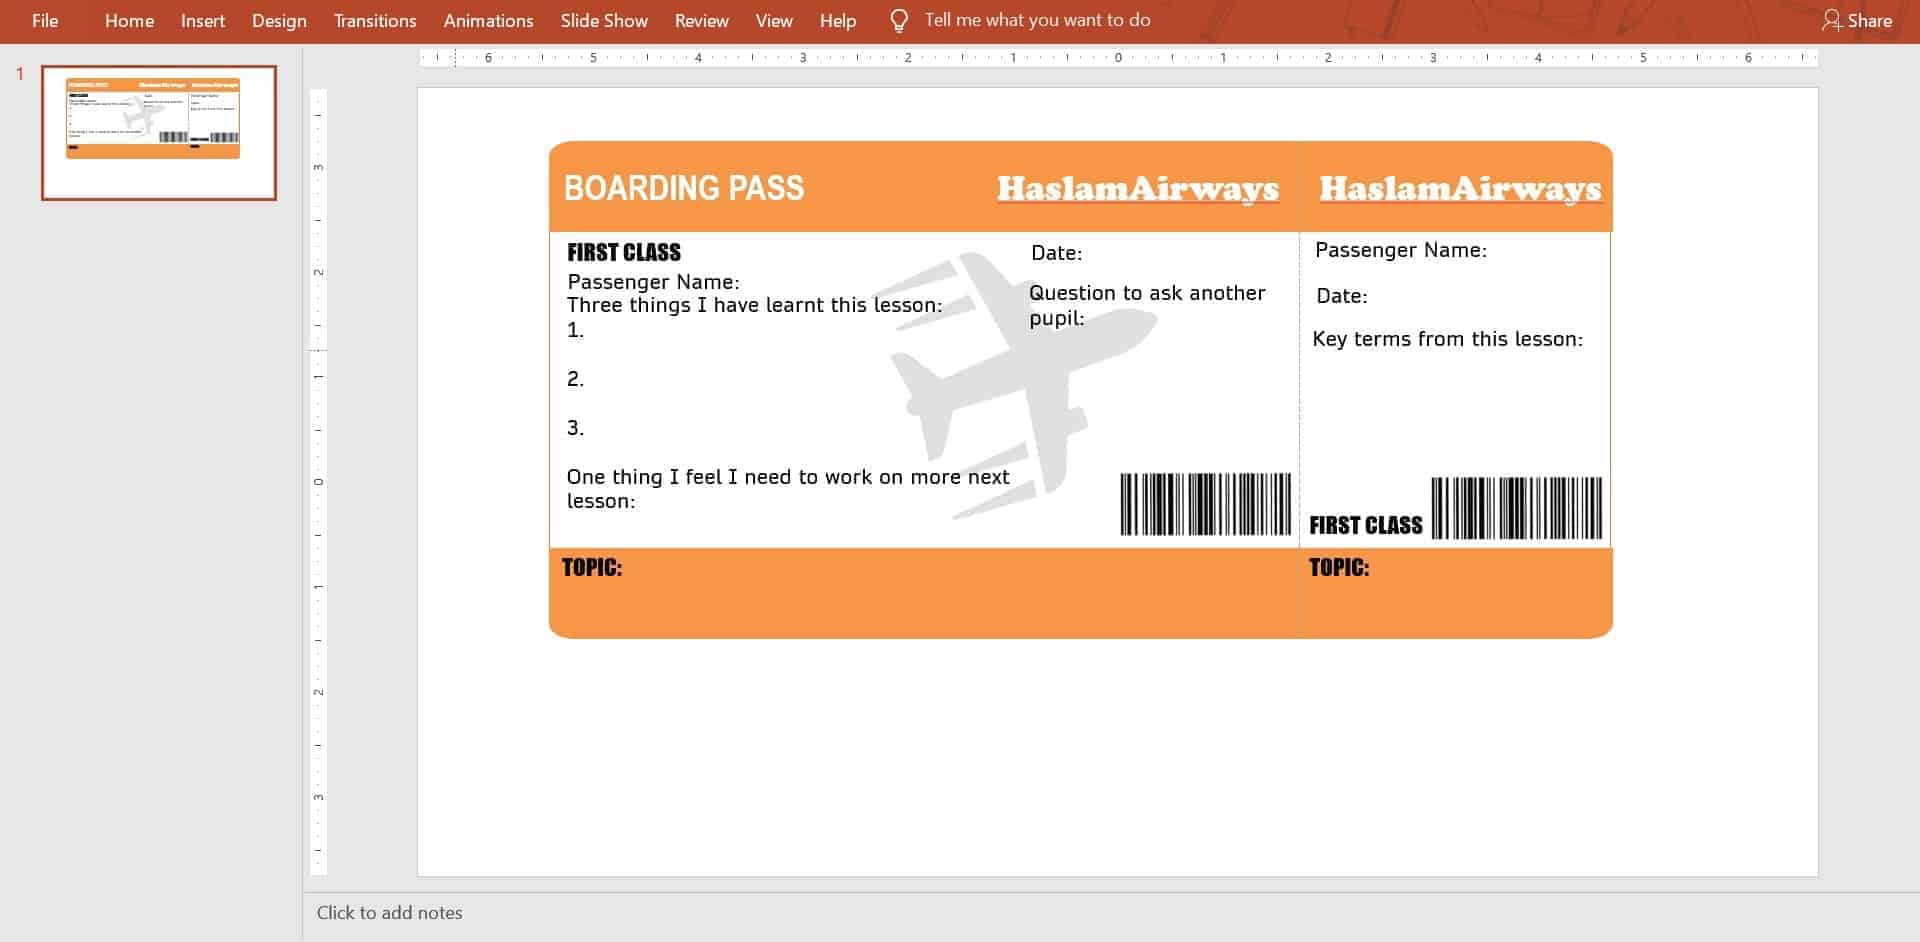 New uploads to @PE4Learning by @MissHaslamPE - Boarding Pass